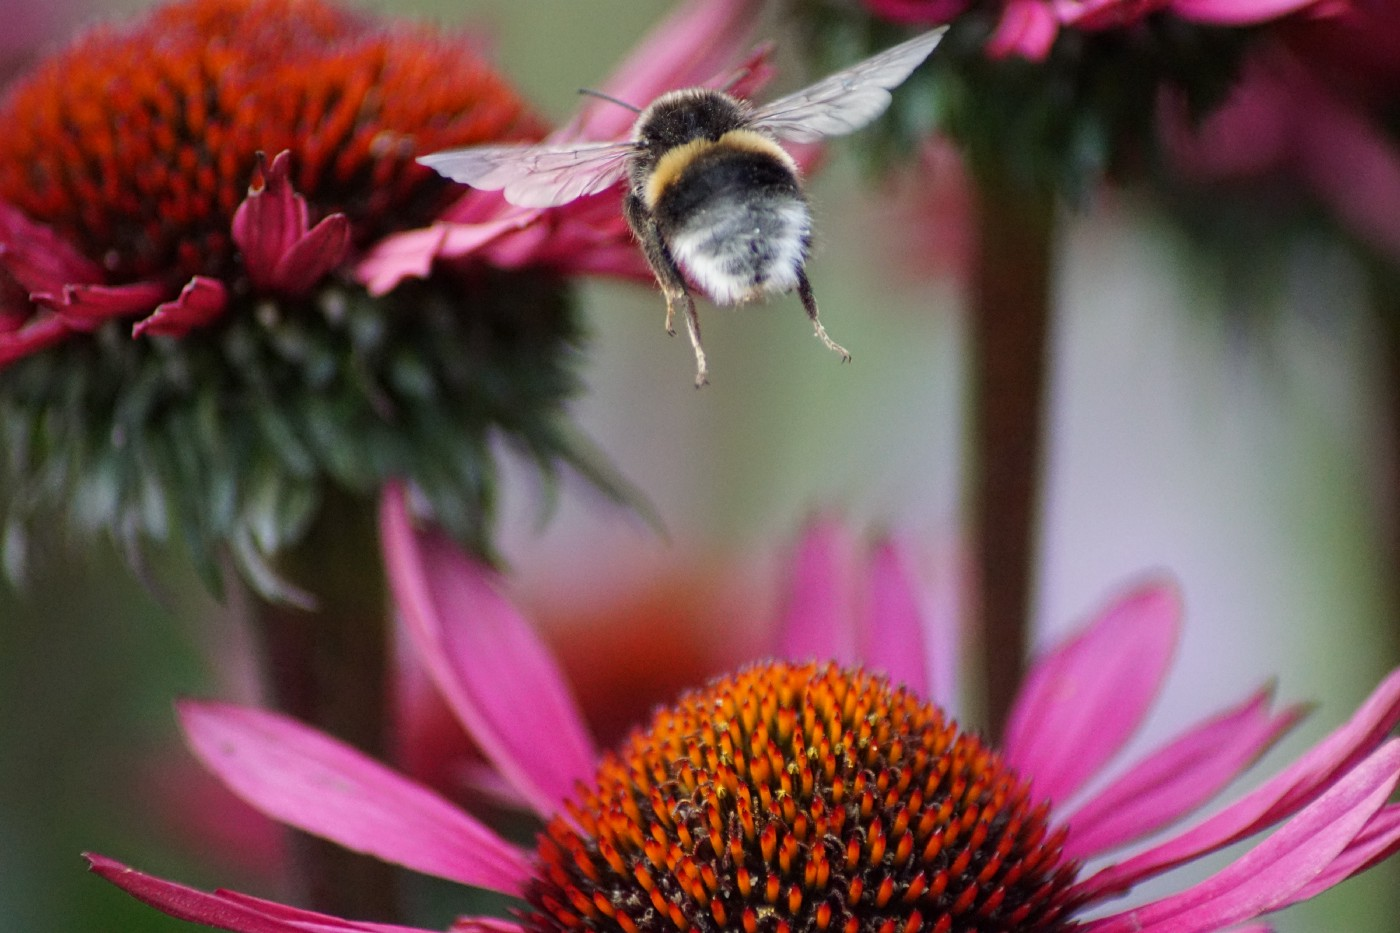 Buff-tailed bumblebee taking flight while foraging on, and pollinating, flowers